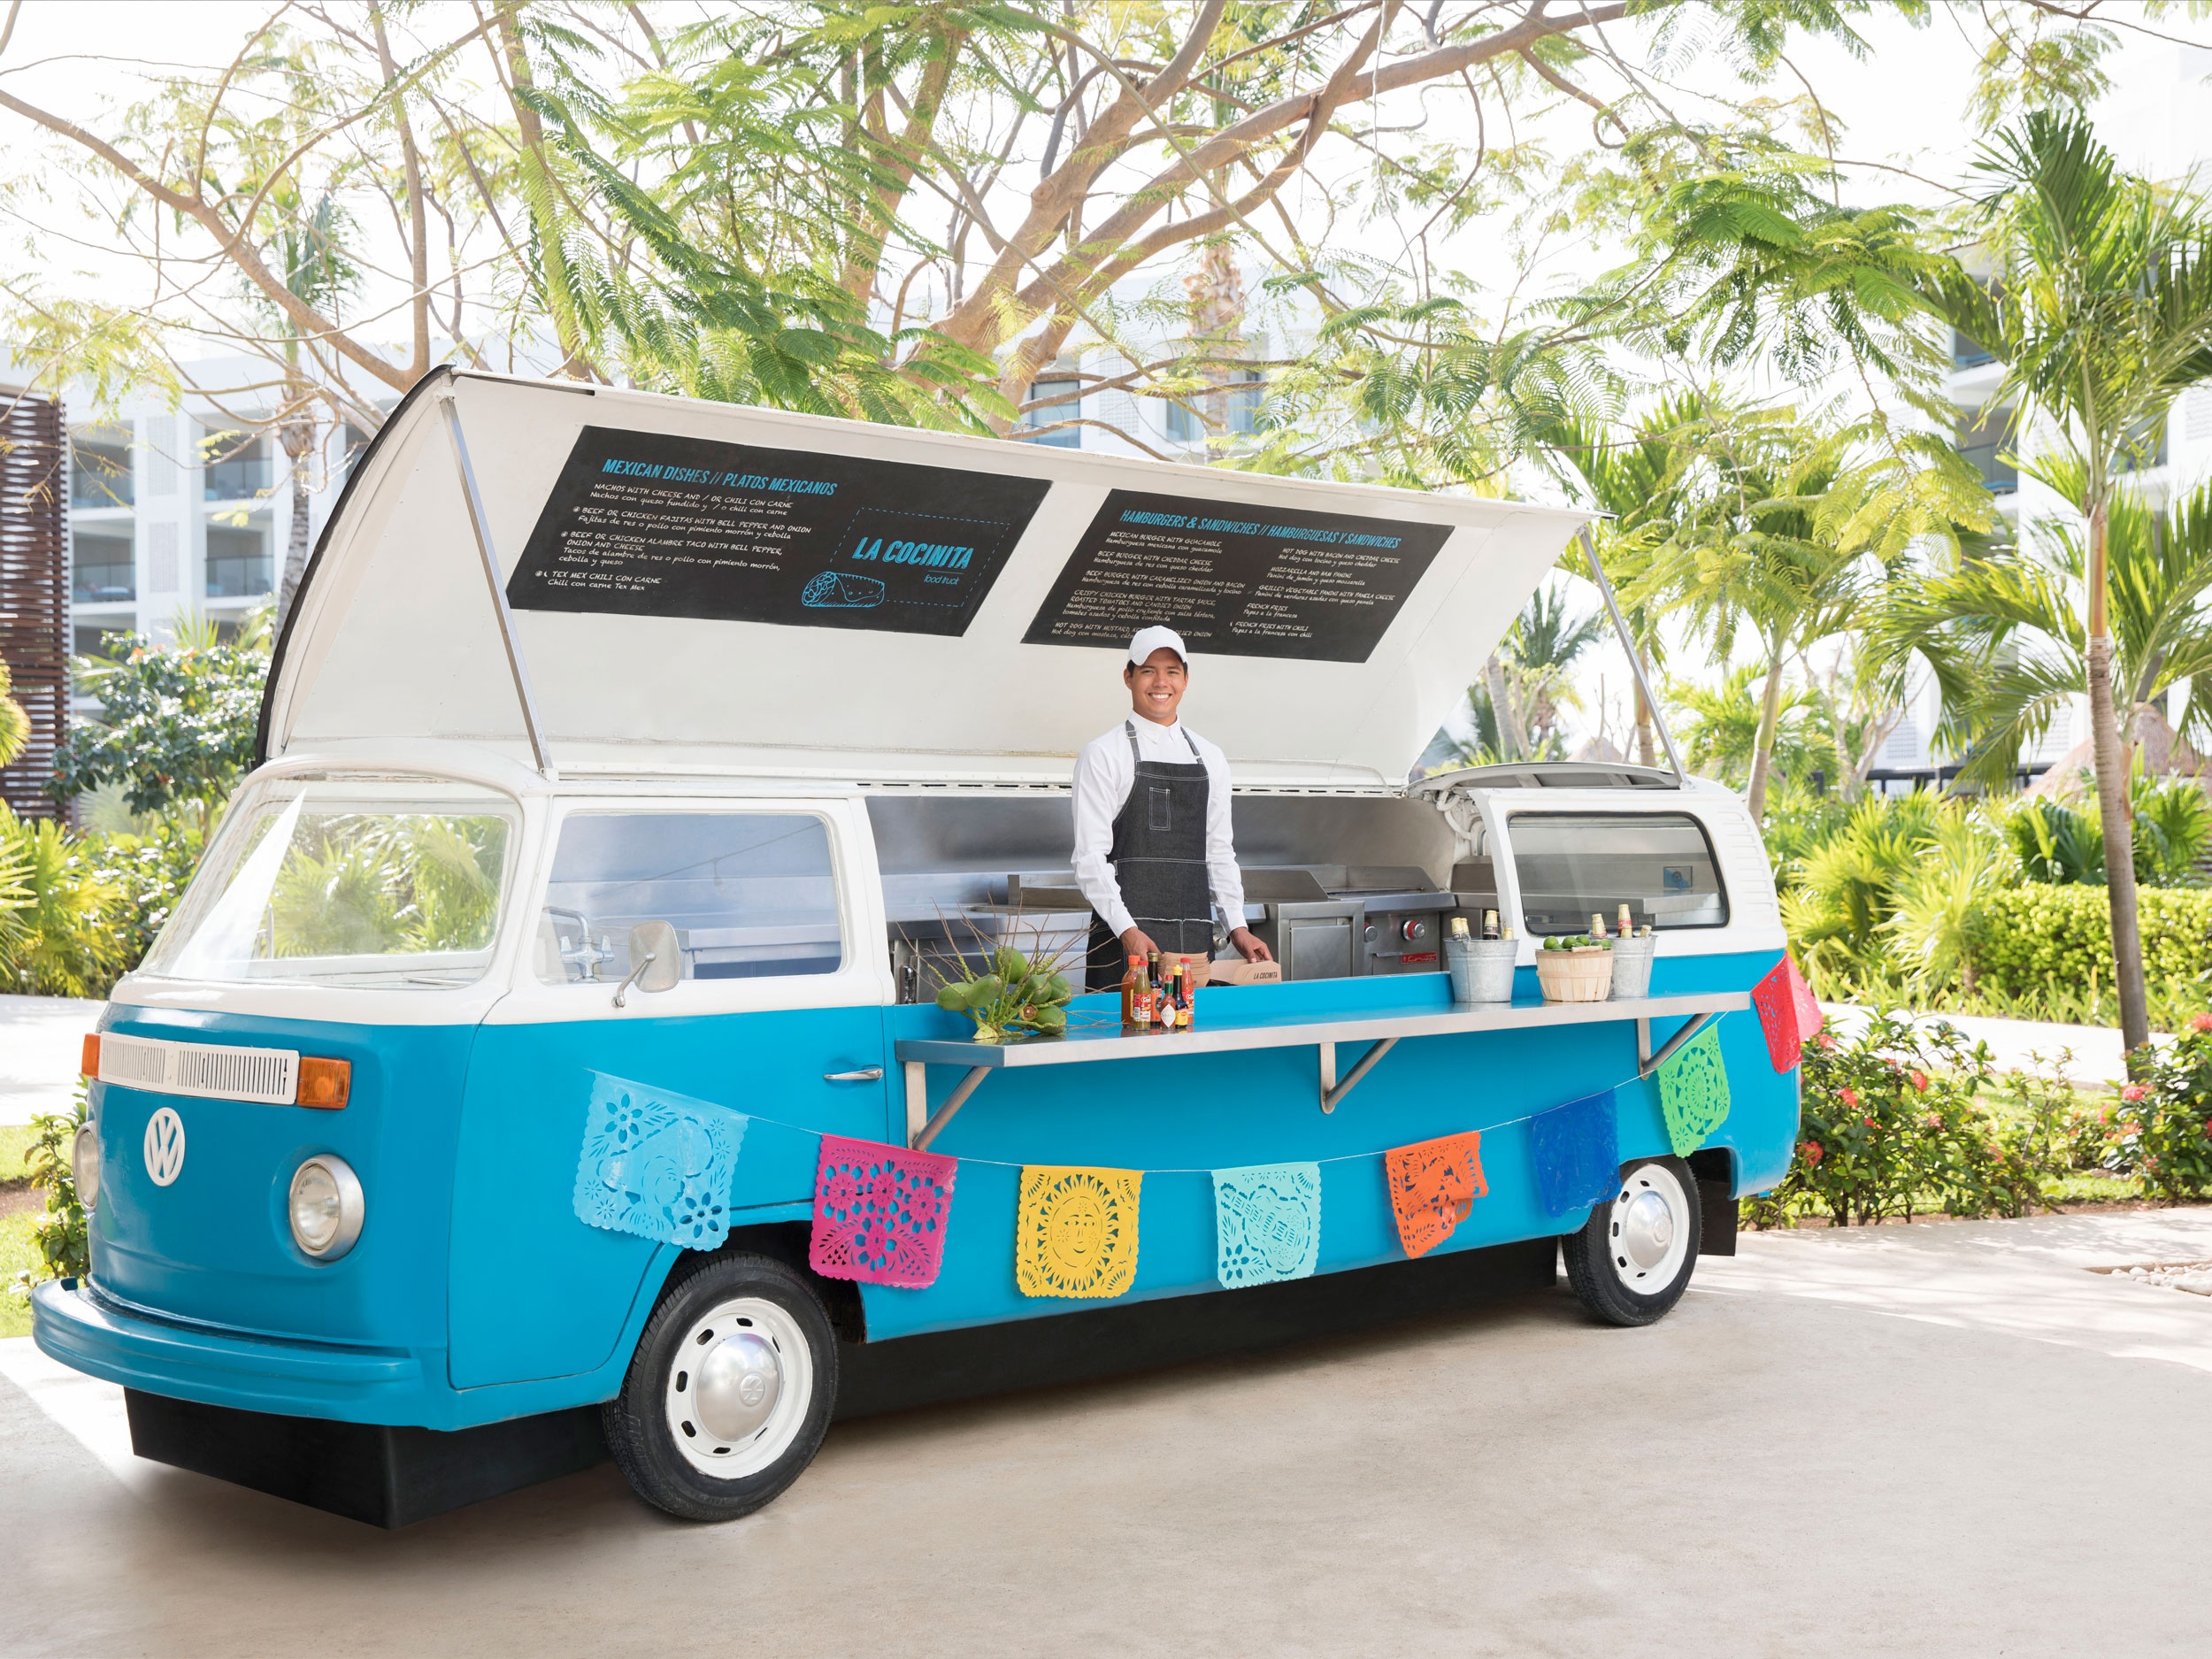 Food Truck en Cancún